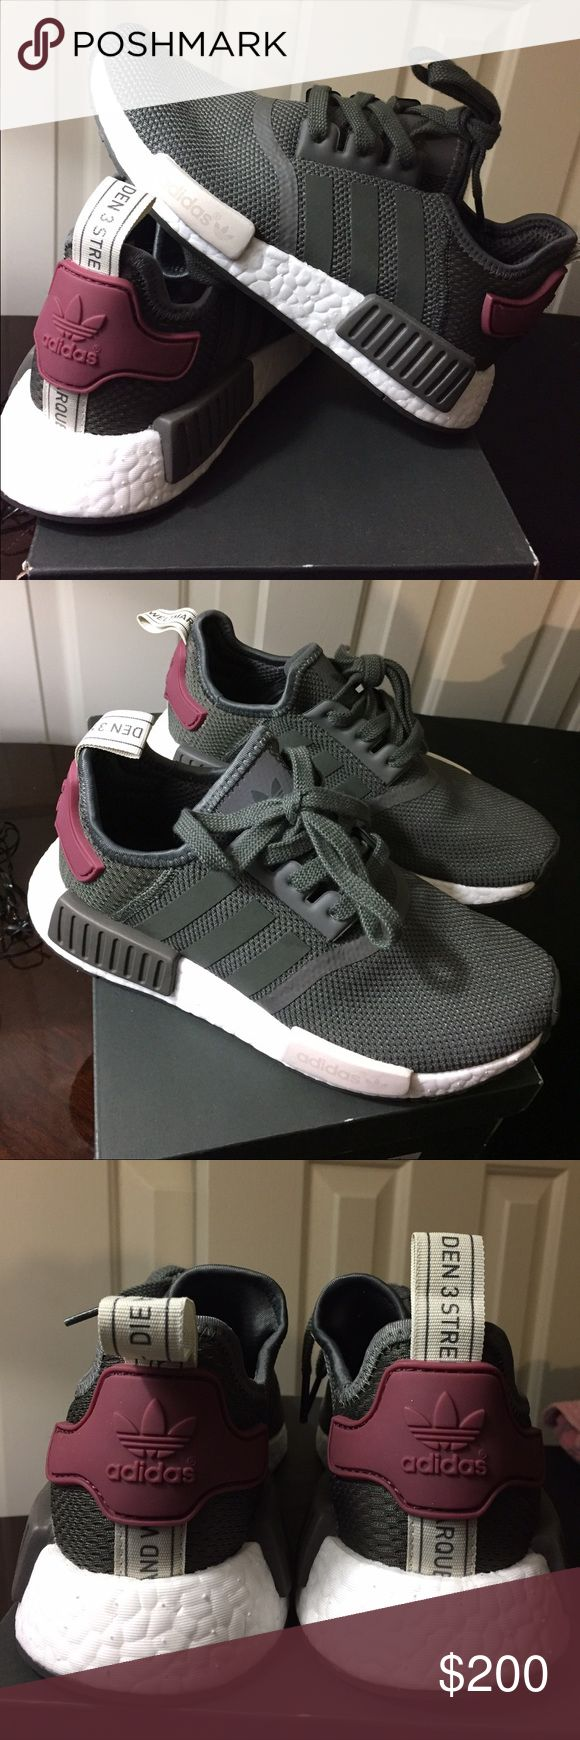 Adidas NMD R1 NEW NEW Adidas NMD R1 Size 5.5 Color: Utility Gray/Maroon (BA7752) I bought it from Adidas website Adidas Shoes Sneakers